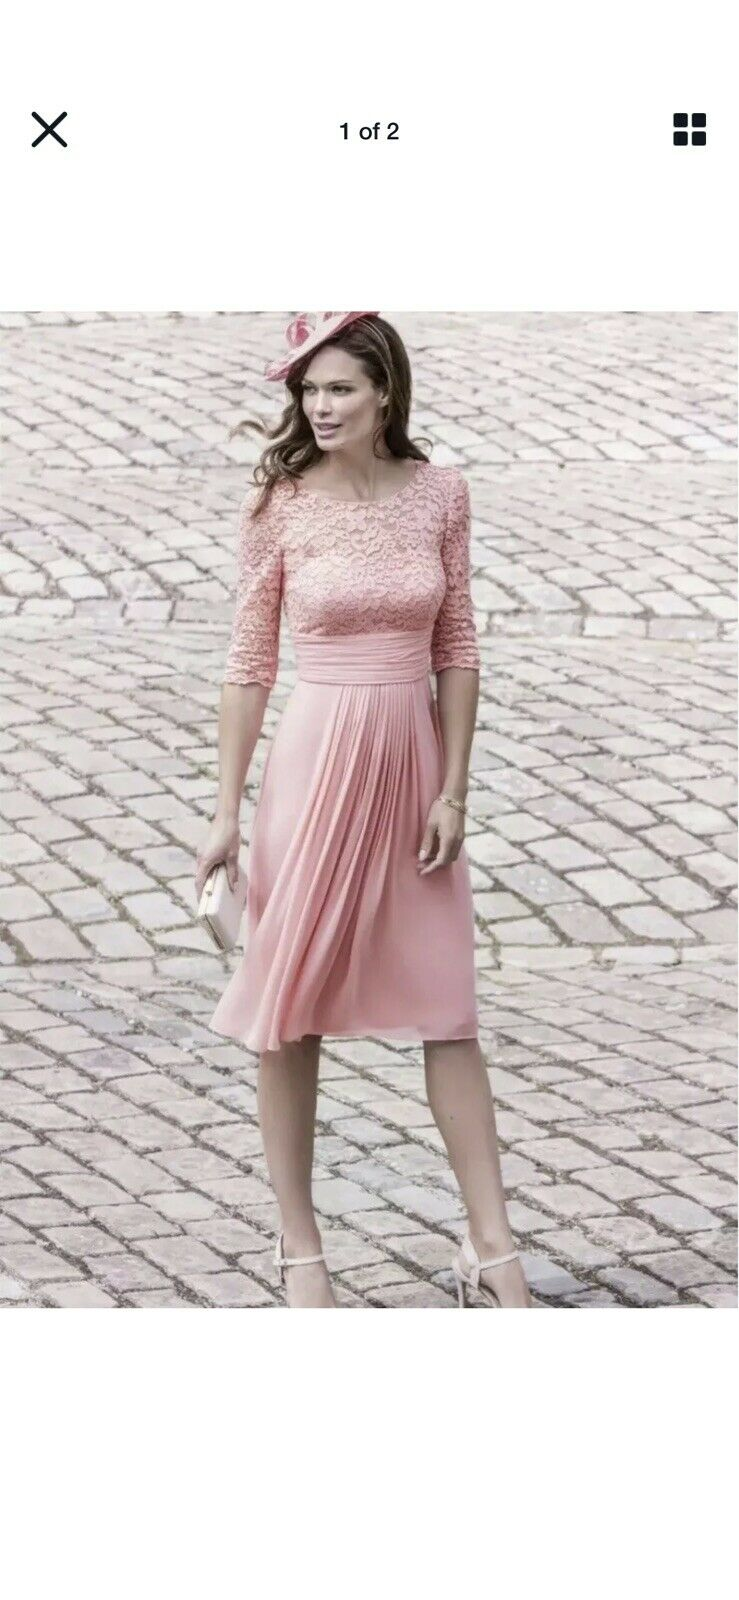 John Charles Pink Lacey Dress Gorgeous Outfit Wedding,Races,Party UK 10 BNWT